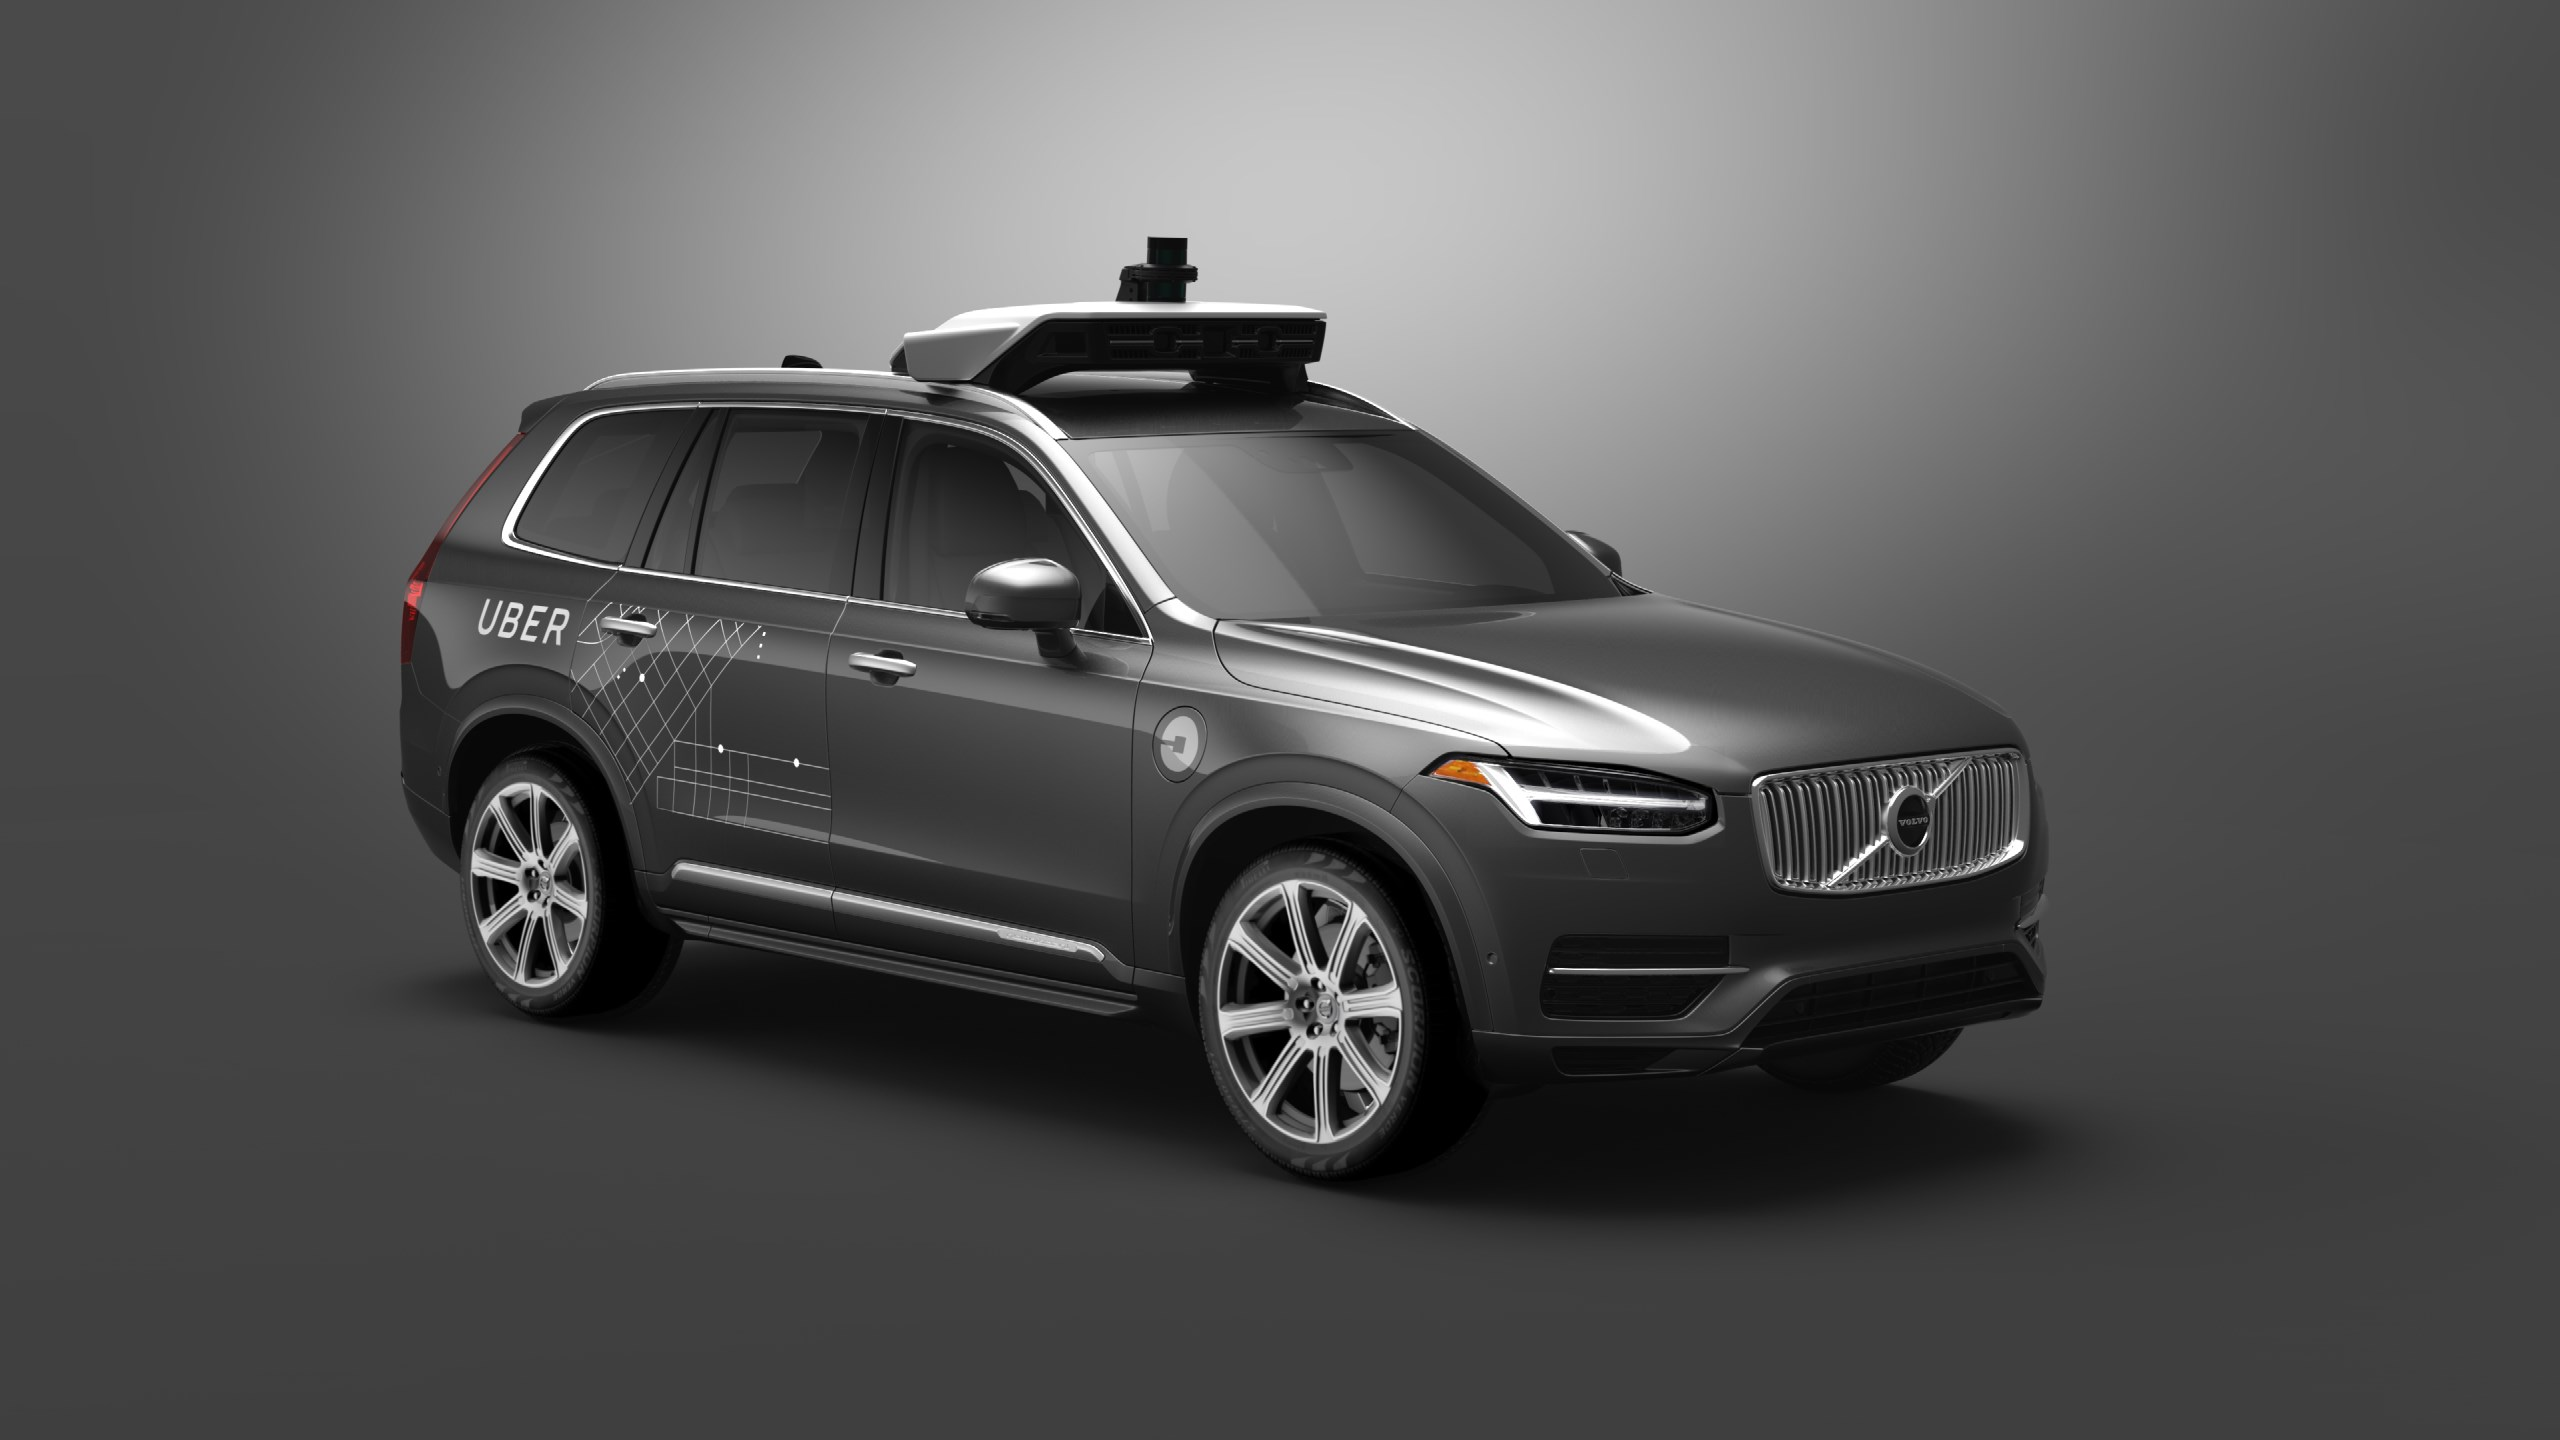 194846_Volvo_Cars_and_Uber_join_forces_to_develop_autonomous_driving_cars.jpg